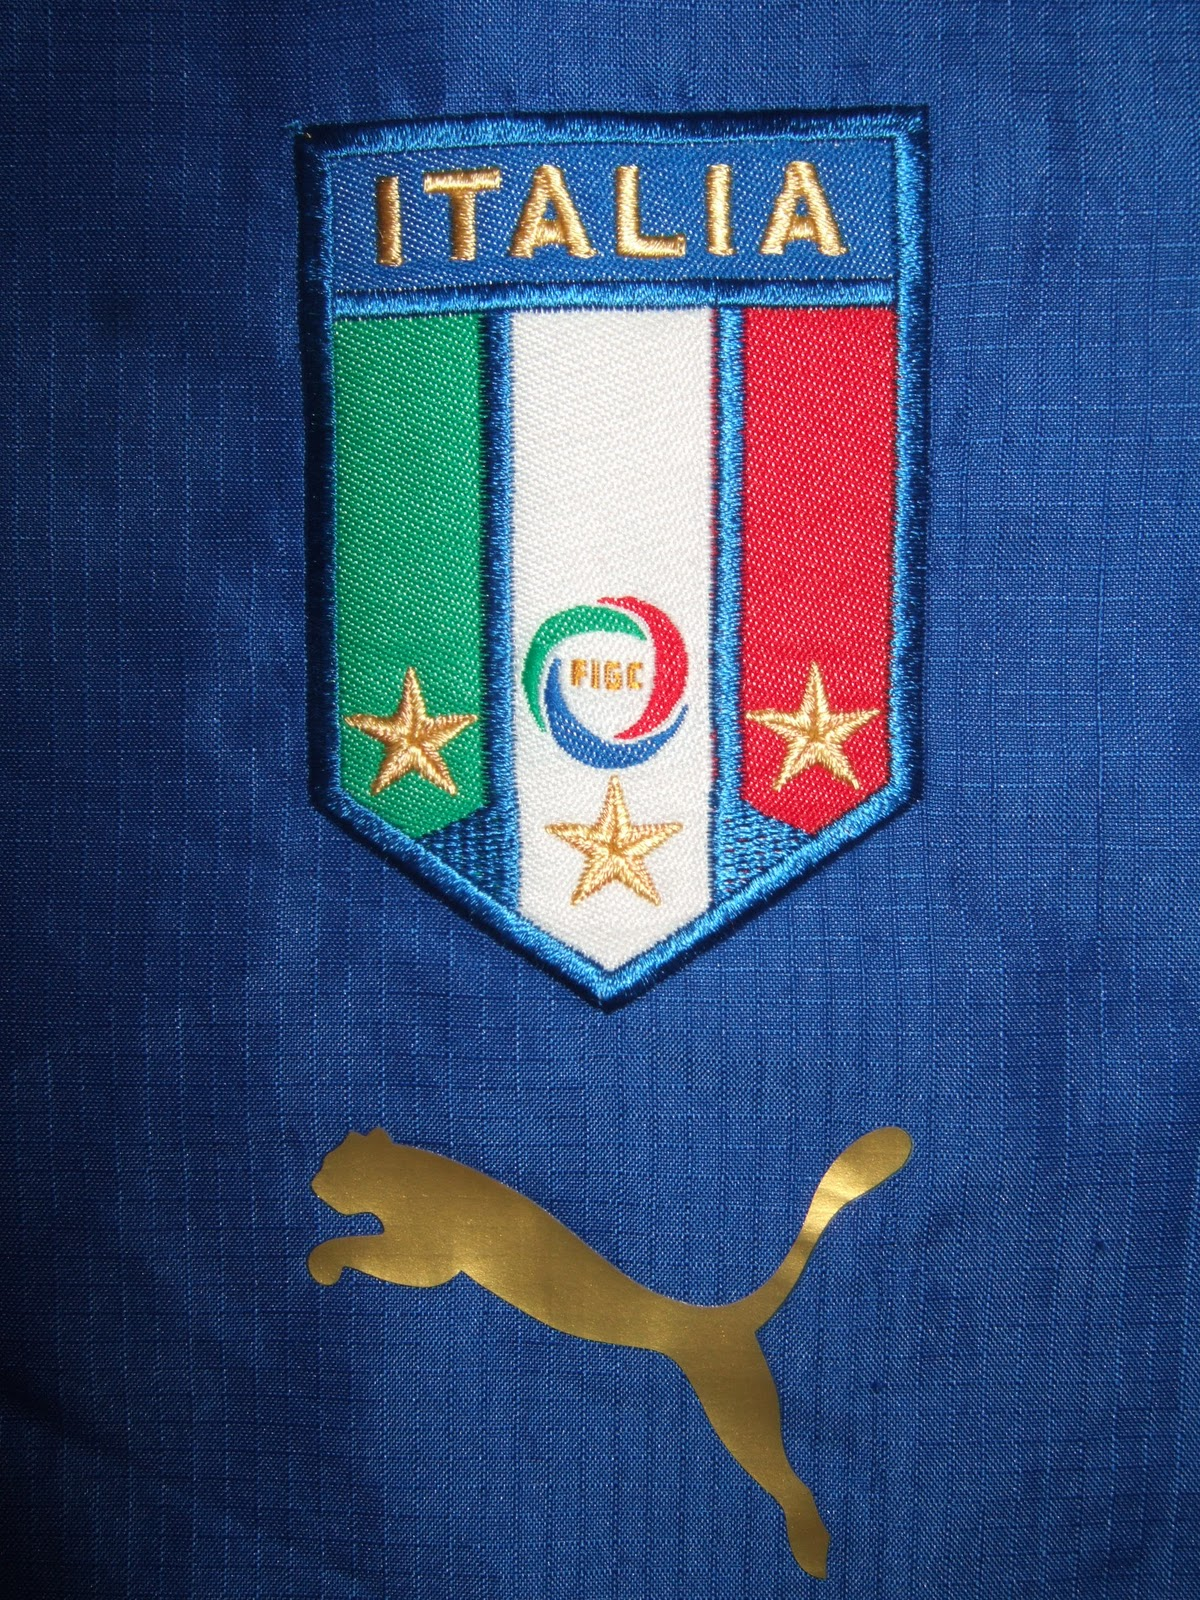 33ce92fd3 This is the shirt Italy wore in 2006 when they won their fourth World Cup  in 2006 and Zinedine Zidane headbutted Marco Materazzi for slagging off his  mum.